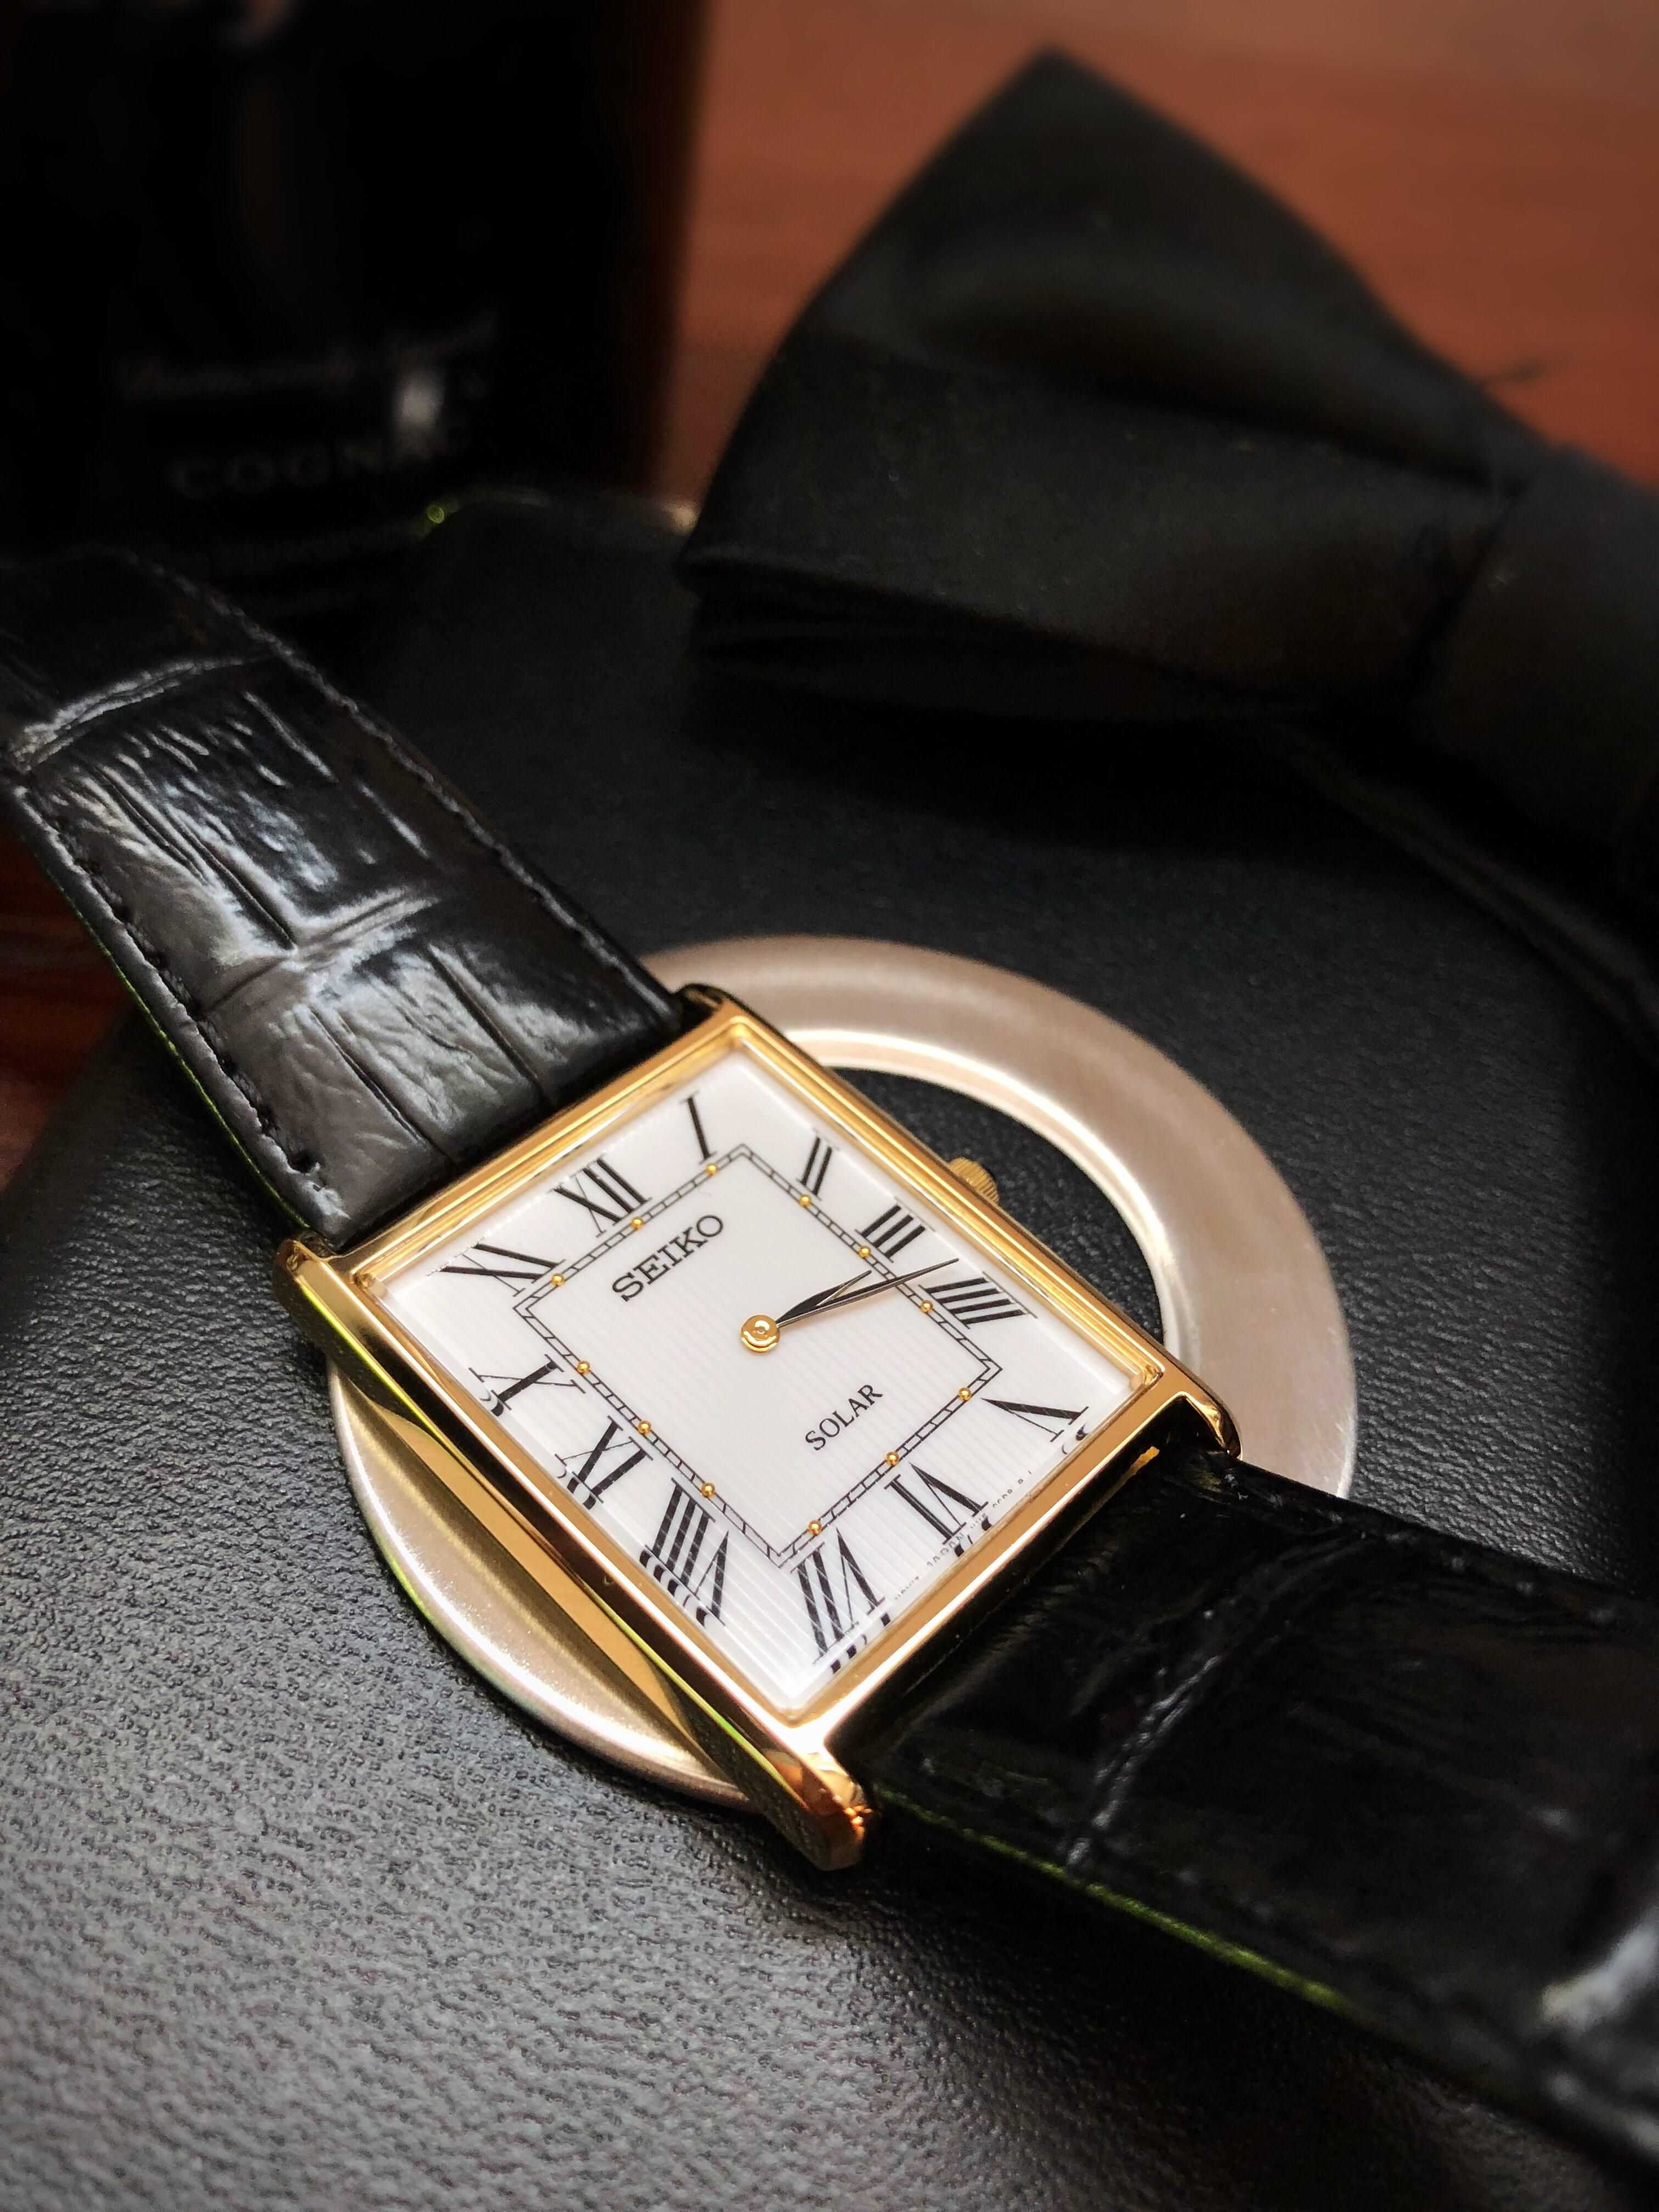 Affordable Cartier Tank Homage Alternatives With Seiko Tank Watches Luxurywatch Menswatch Homagewatch Tank Watch Mens Watches Silver Cartier Tank